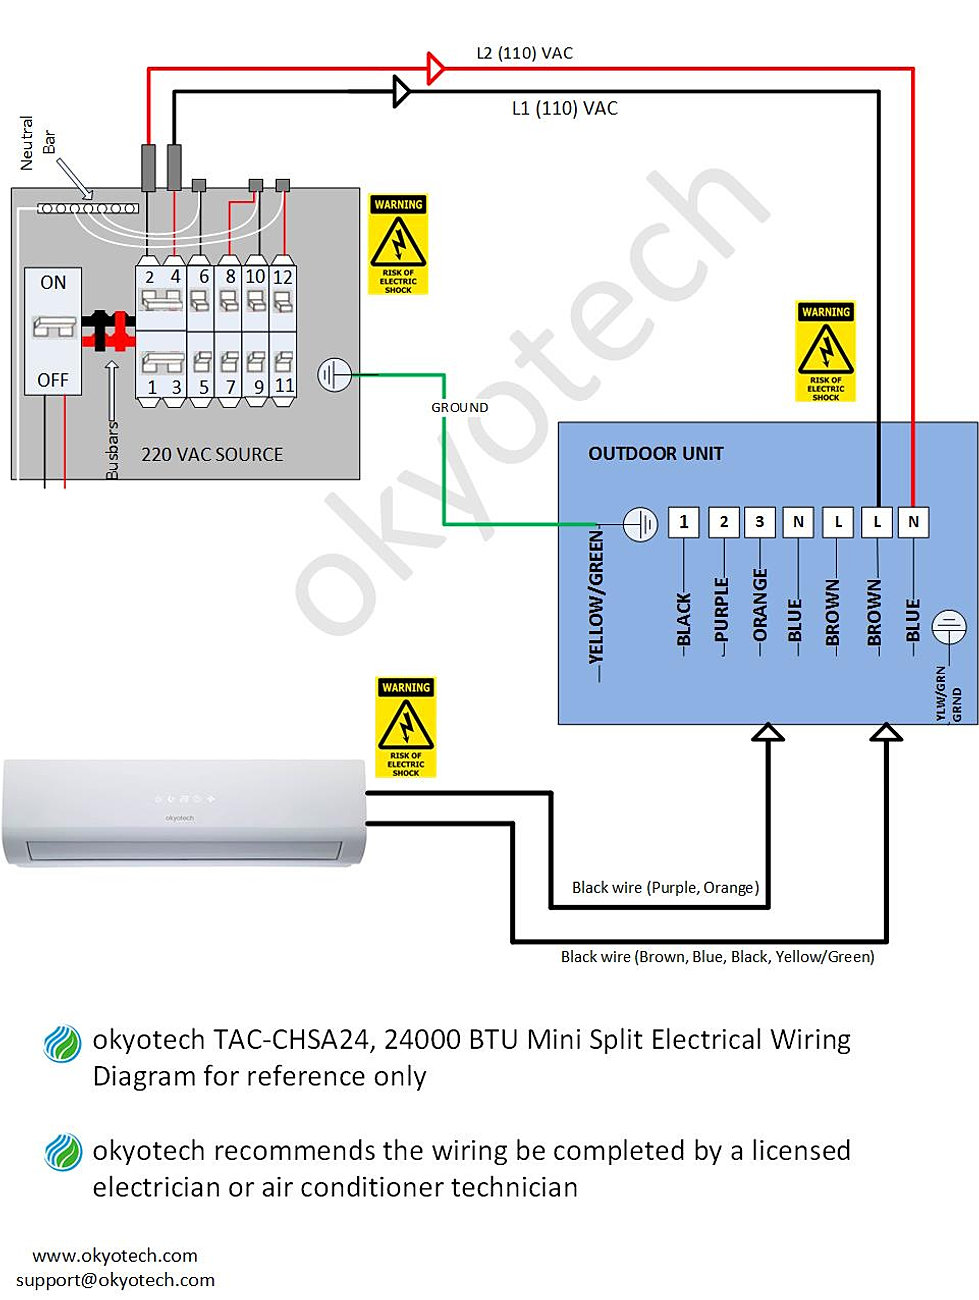 split system wiring diagram split image wiring diagram okyotech 3d mini split ductless air conditioner cooling heating on split system wiring diagram